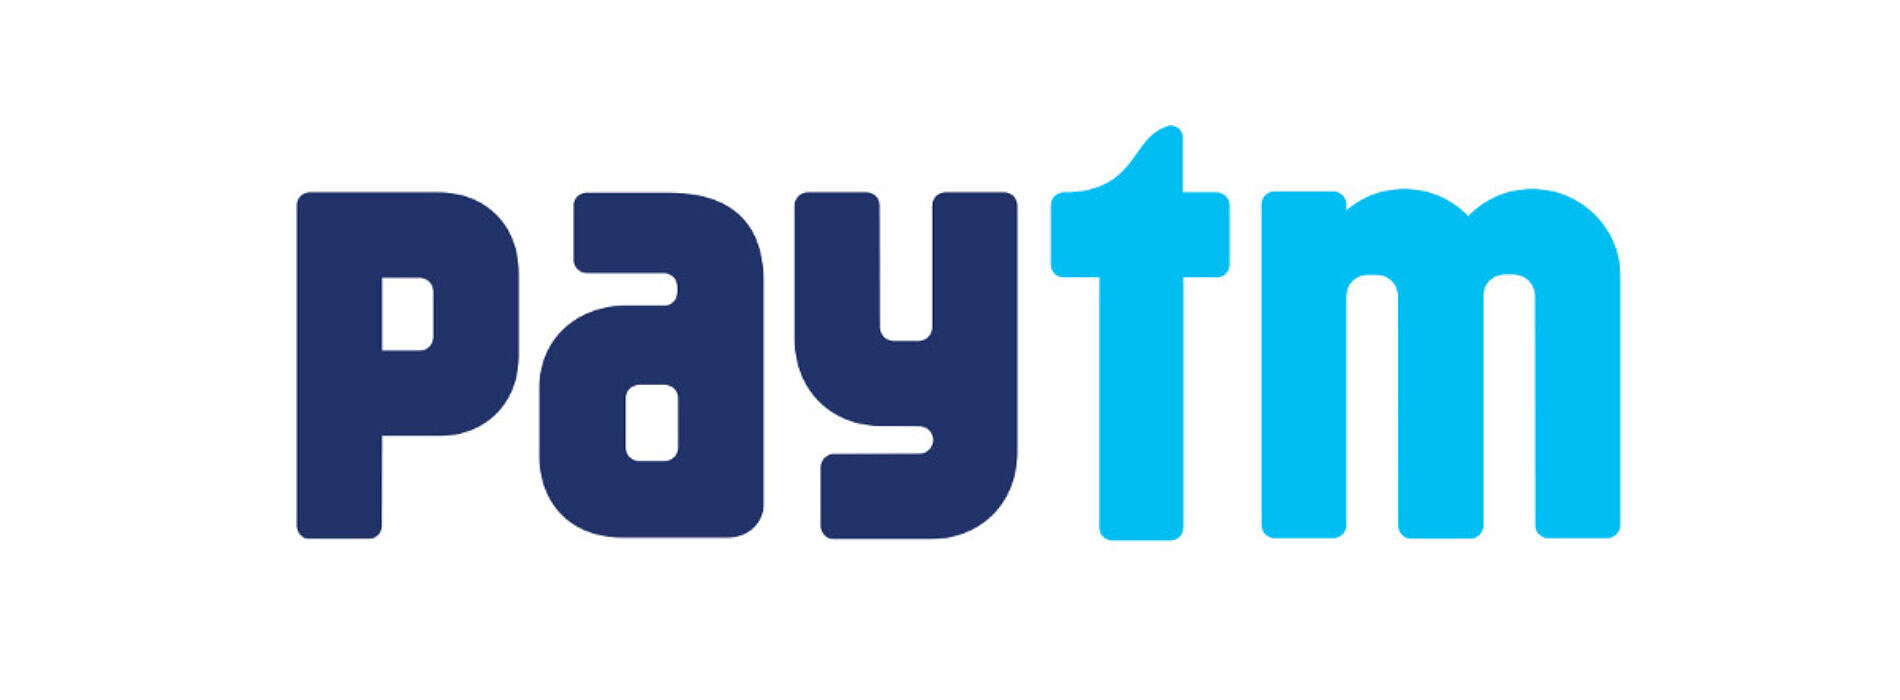 [Update: Reinstated] Paytm removed from Google Play Store for policy violations, likely due to its fantasy gaming platform